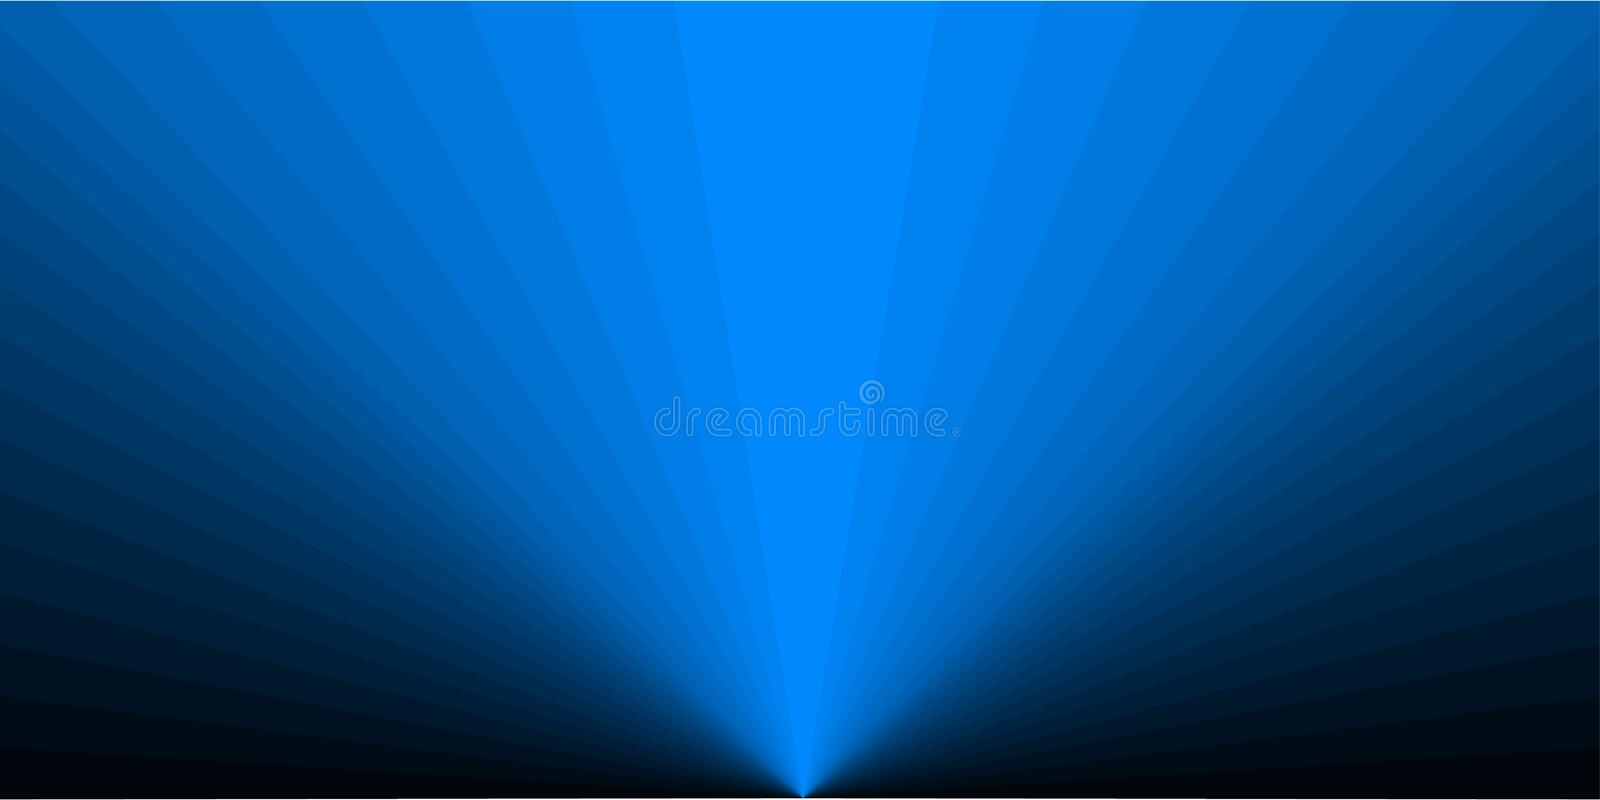 Rectangular background in the form of blue rays royalty free illustration